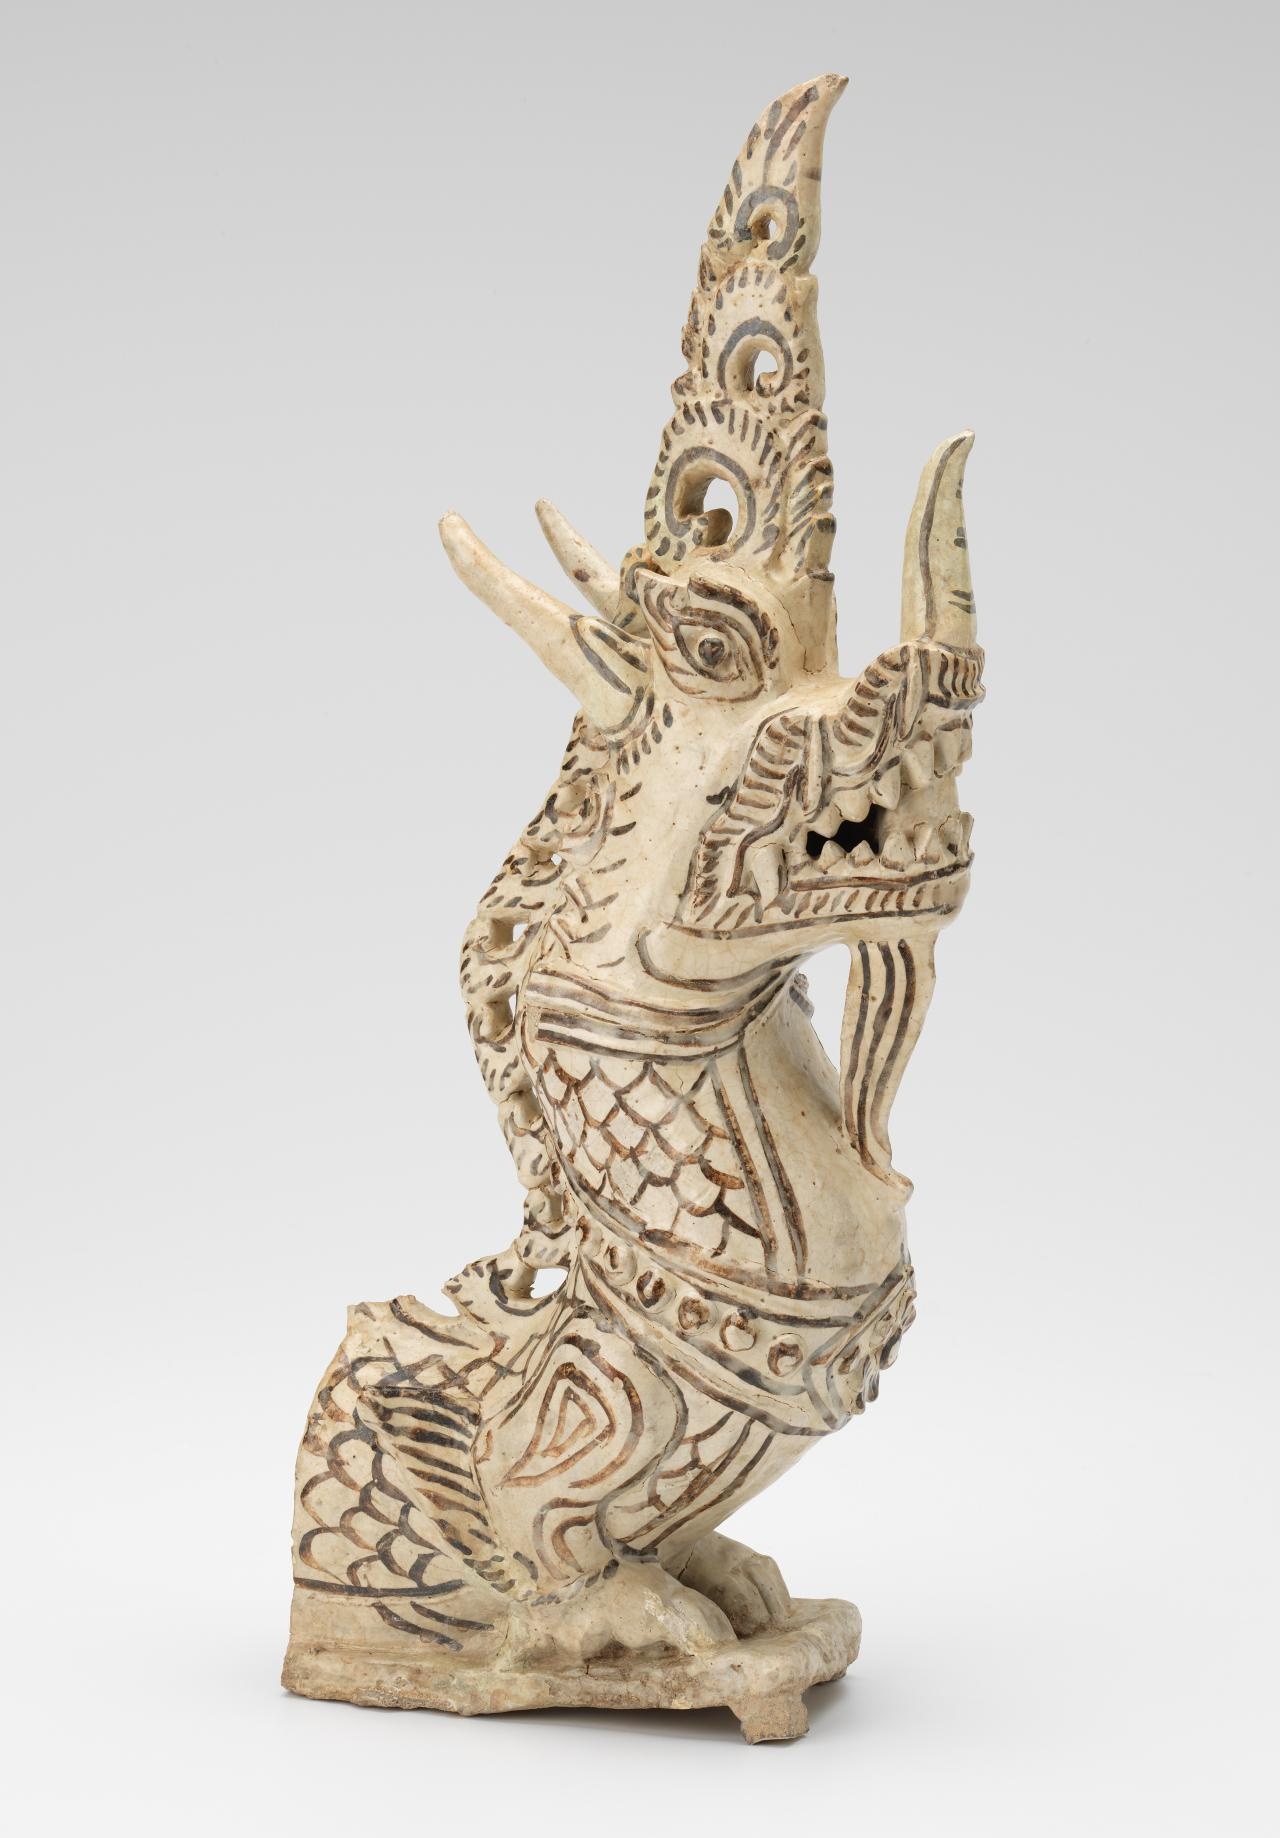 Roof finial in the form of a makara